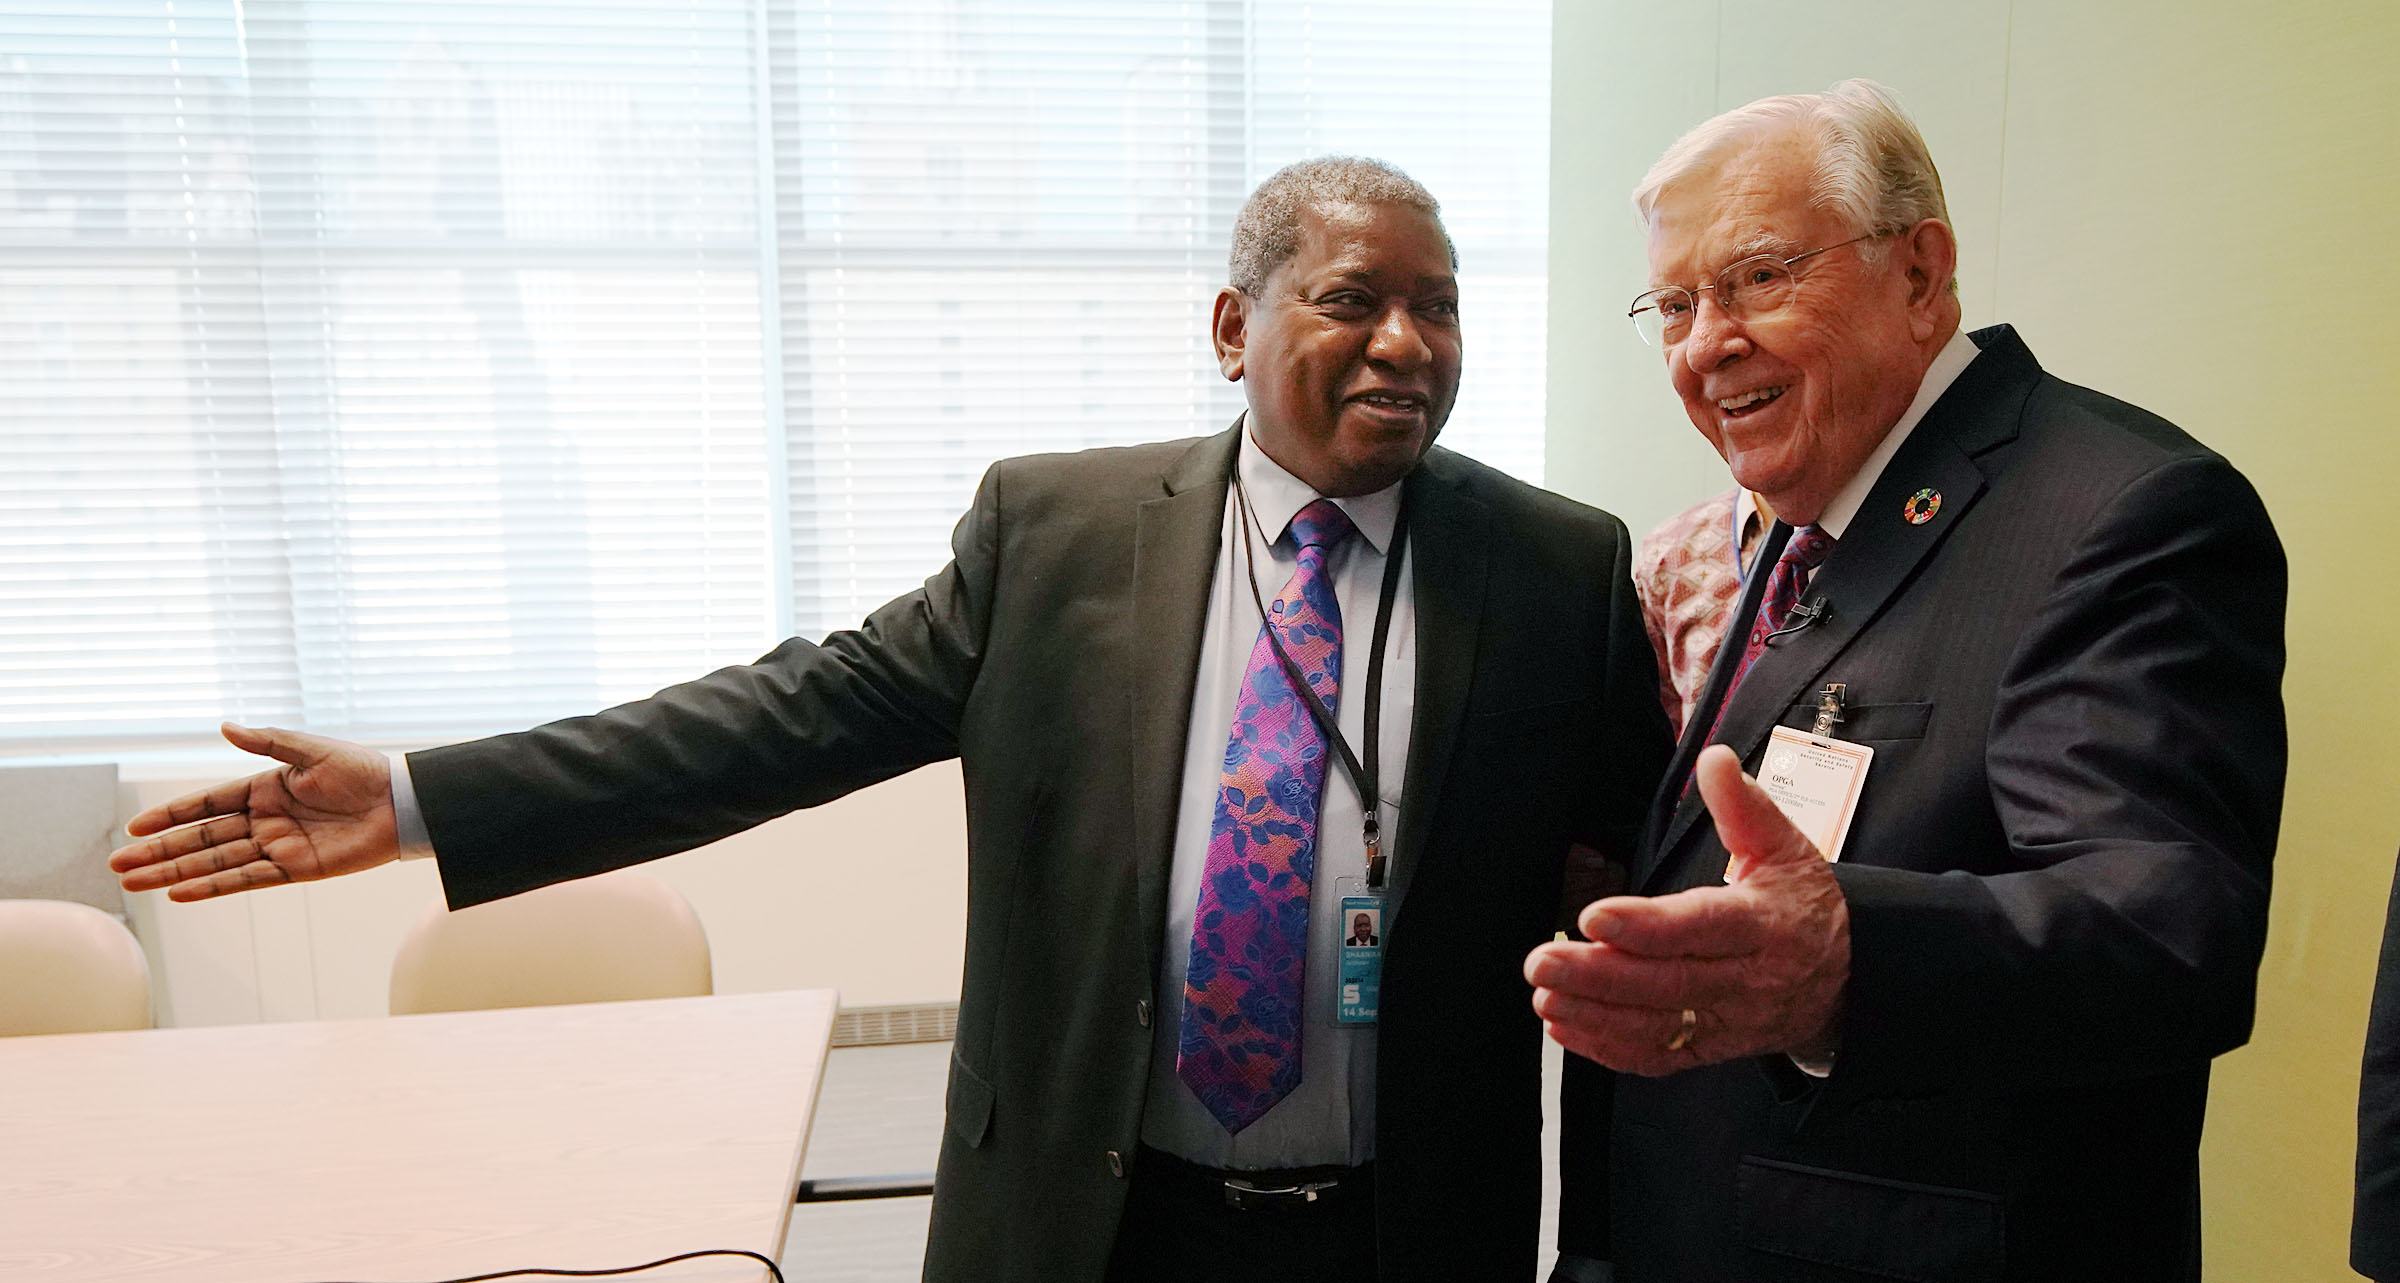 President M. Russell Ballard, right, acting president of the Quorum of the Twelve Apostles of The Church of Jesus Christ of Latter-day Saints, greets Jerobeam Shaanika, Deputy Chief de Cabinet, office of the President of the General Assembly of the United Nations 74th Session in New York City on Friday, Nov. 15, 2019.